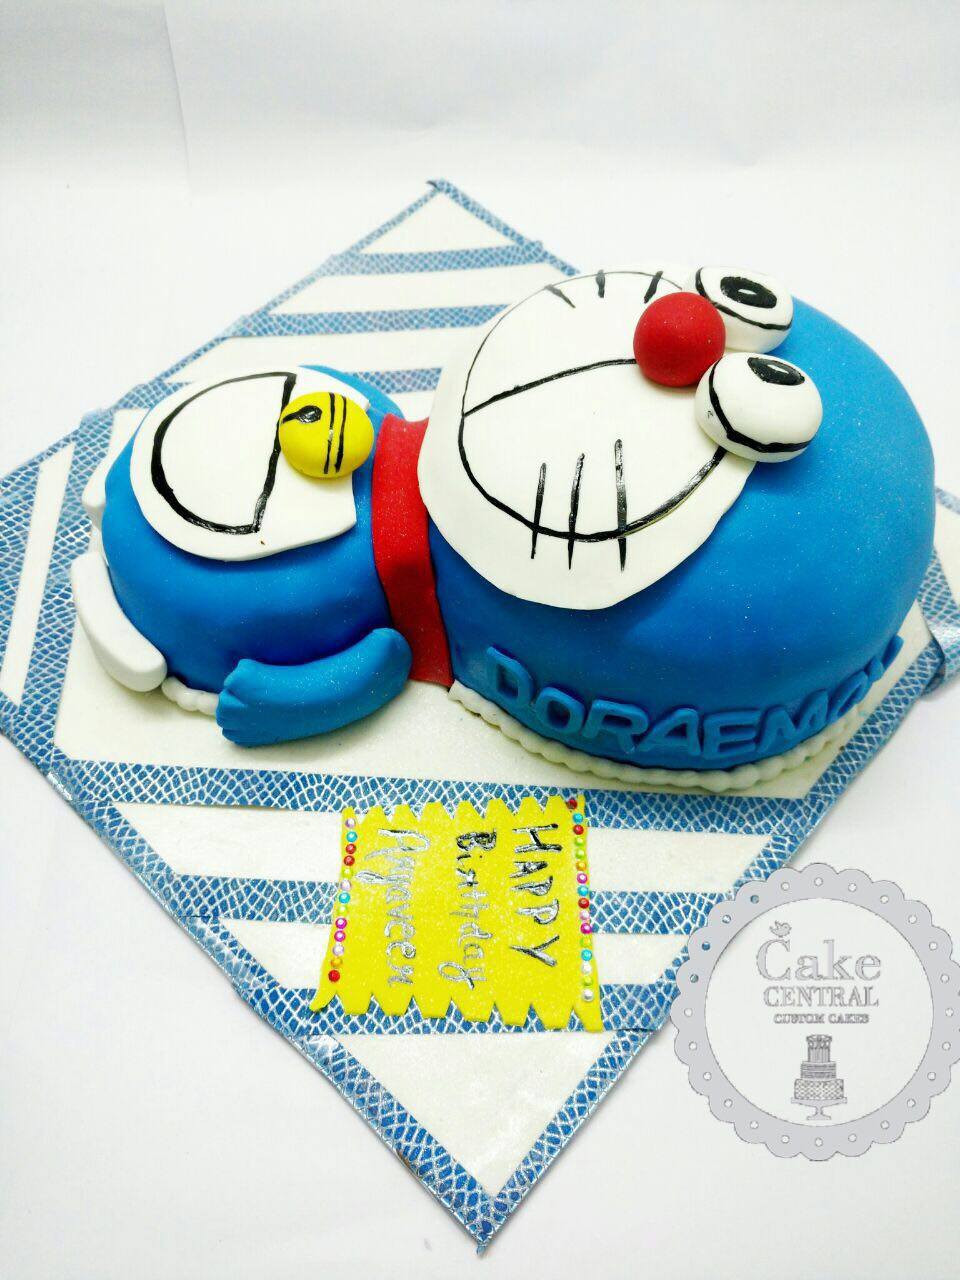 3D Designer Doraemon Birthday Cake , Fondant themed Doraemon Cake by Cake Central Delhi . New Delhi